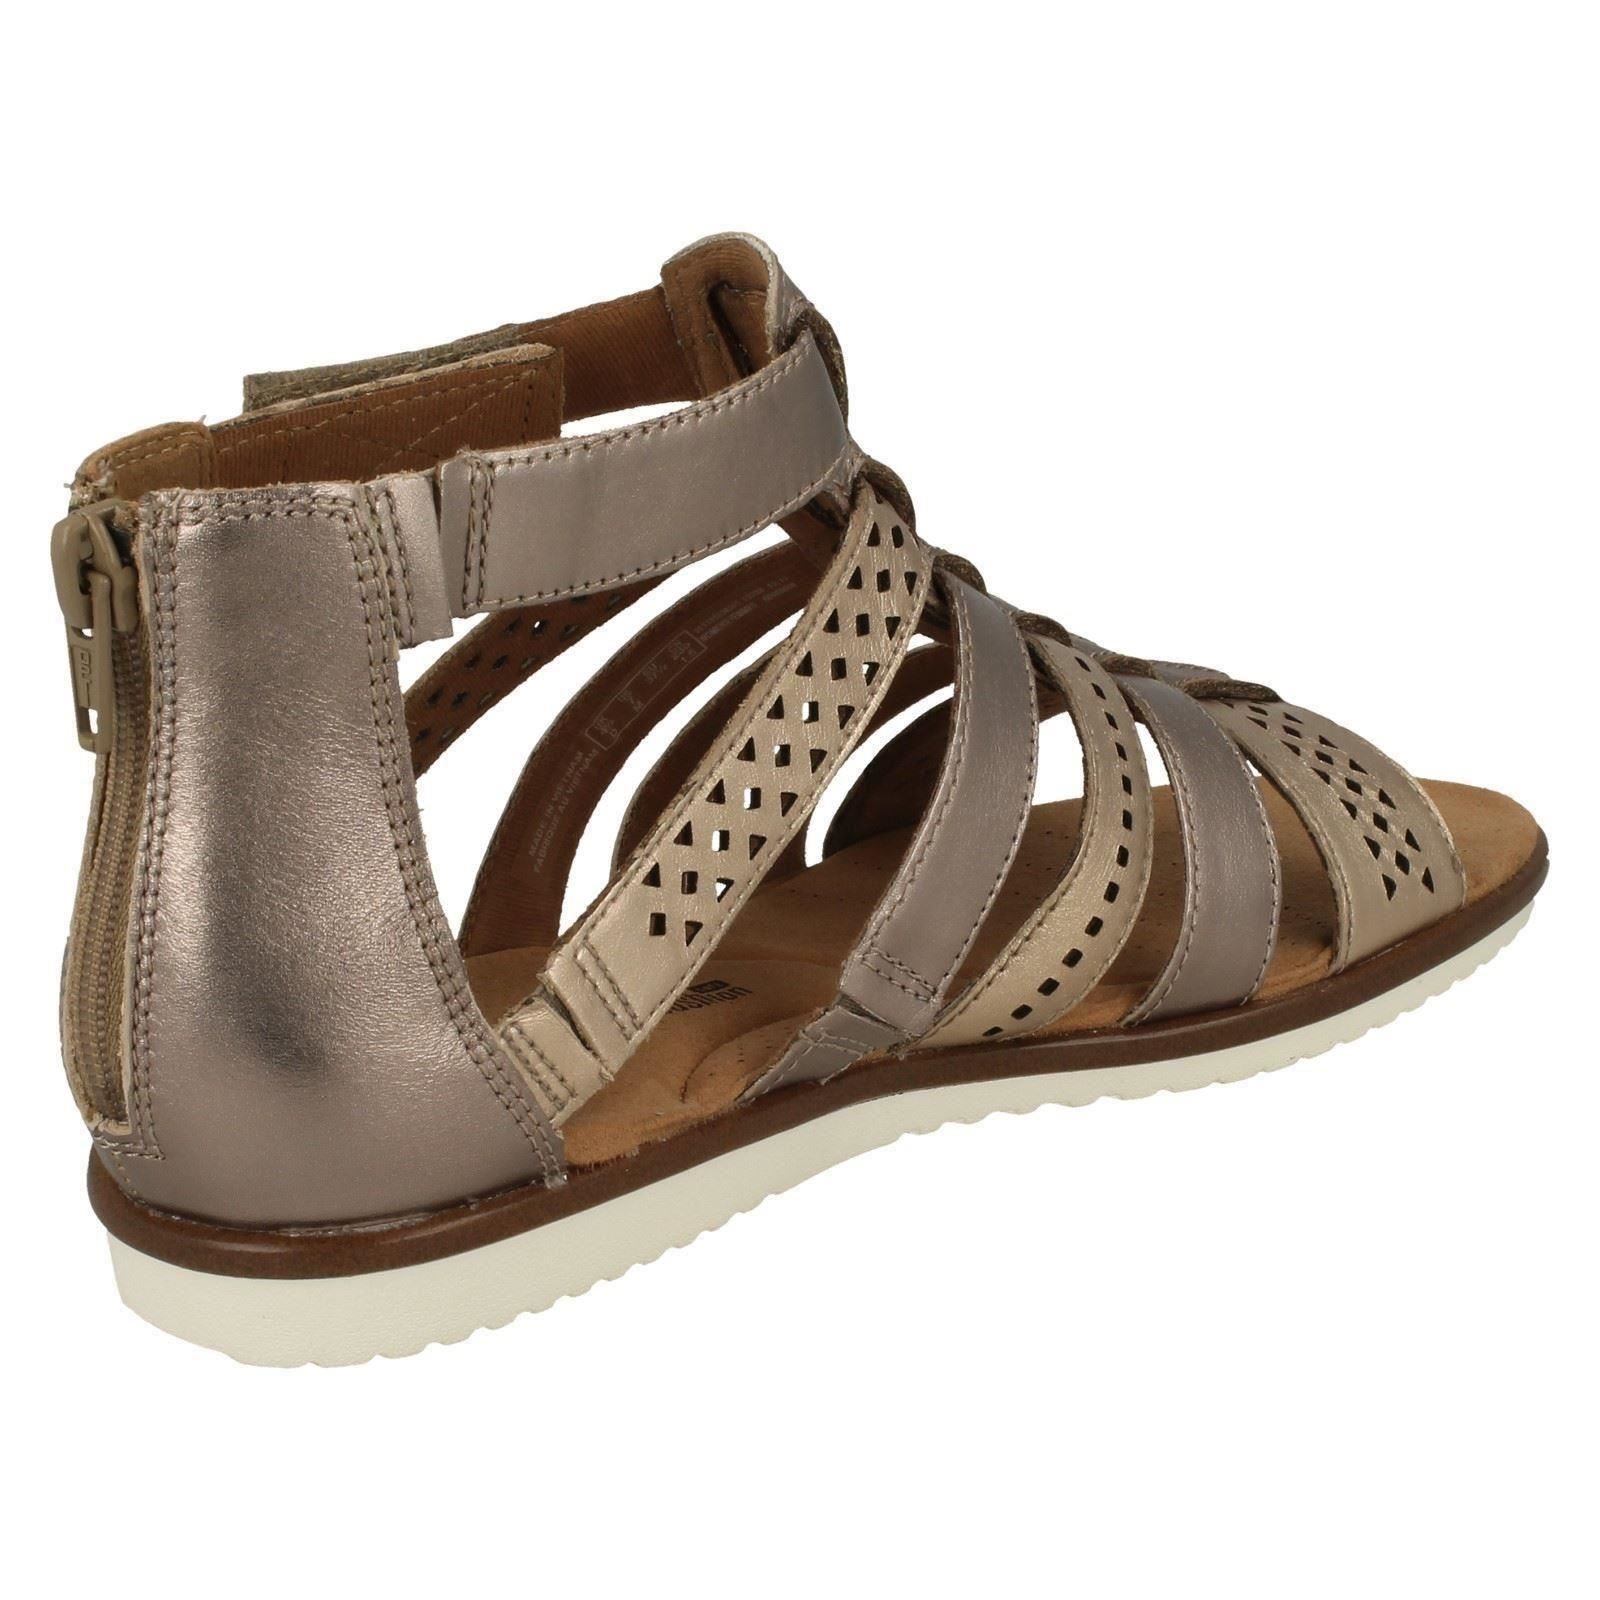 eef7100980da Ladies-Clarks-Gladiator-Sandals-Kele-Lotus thumbnail 6